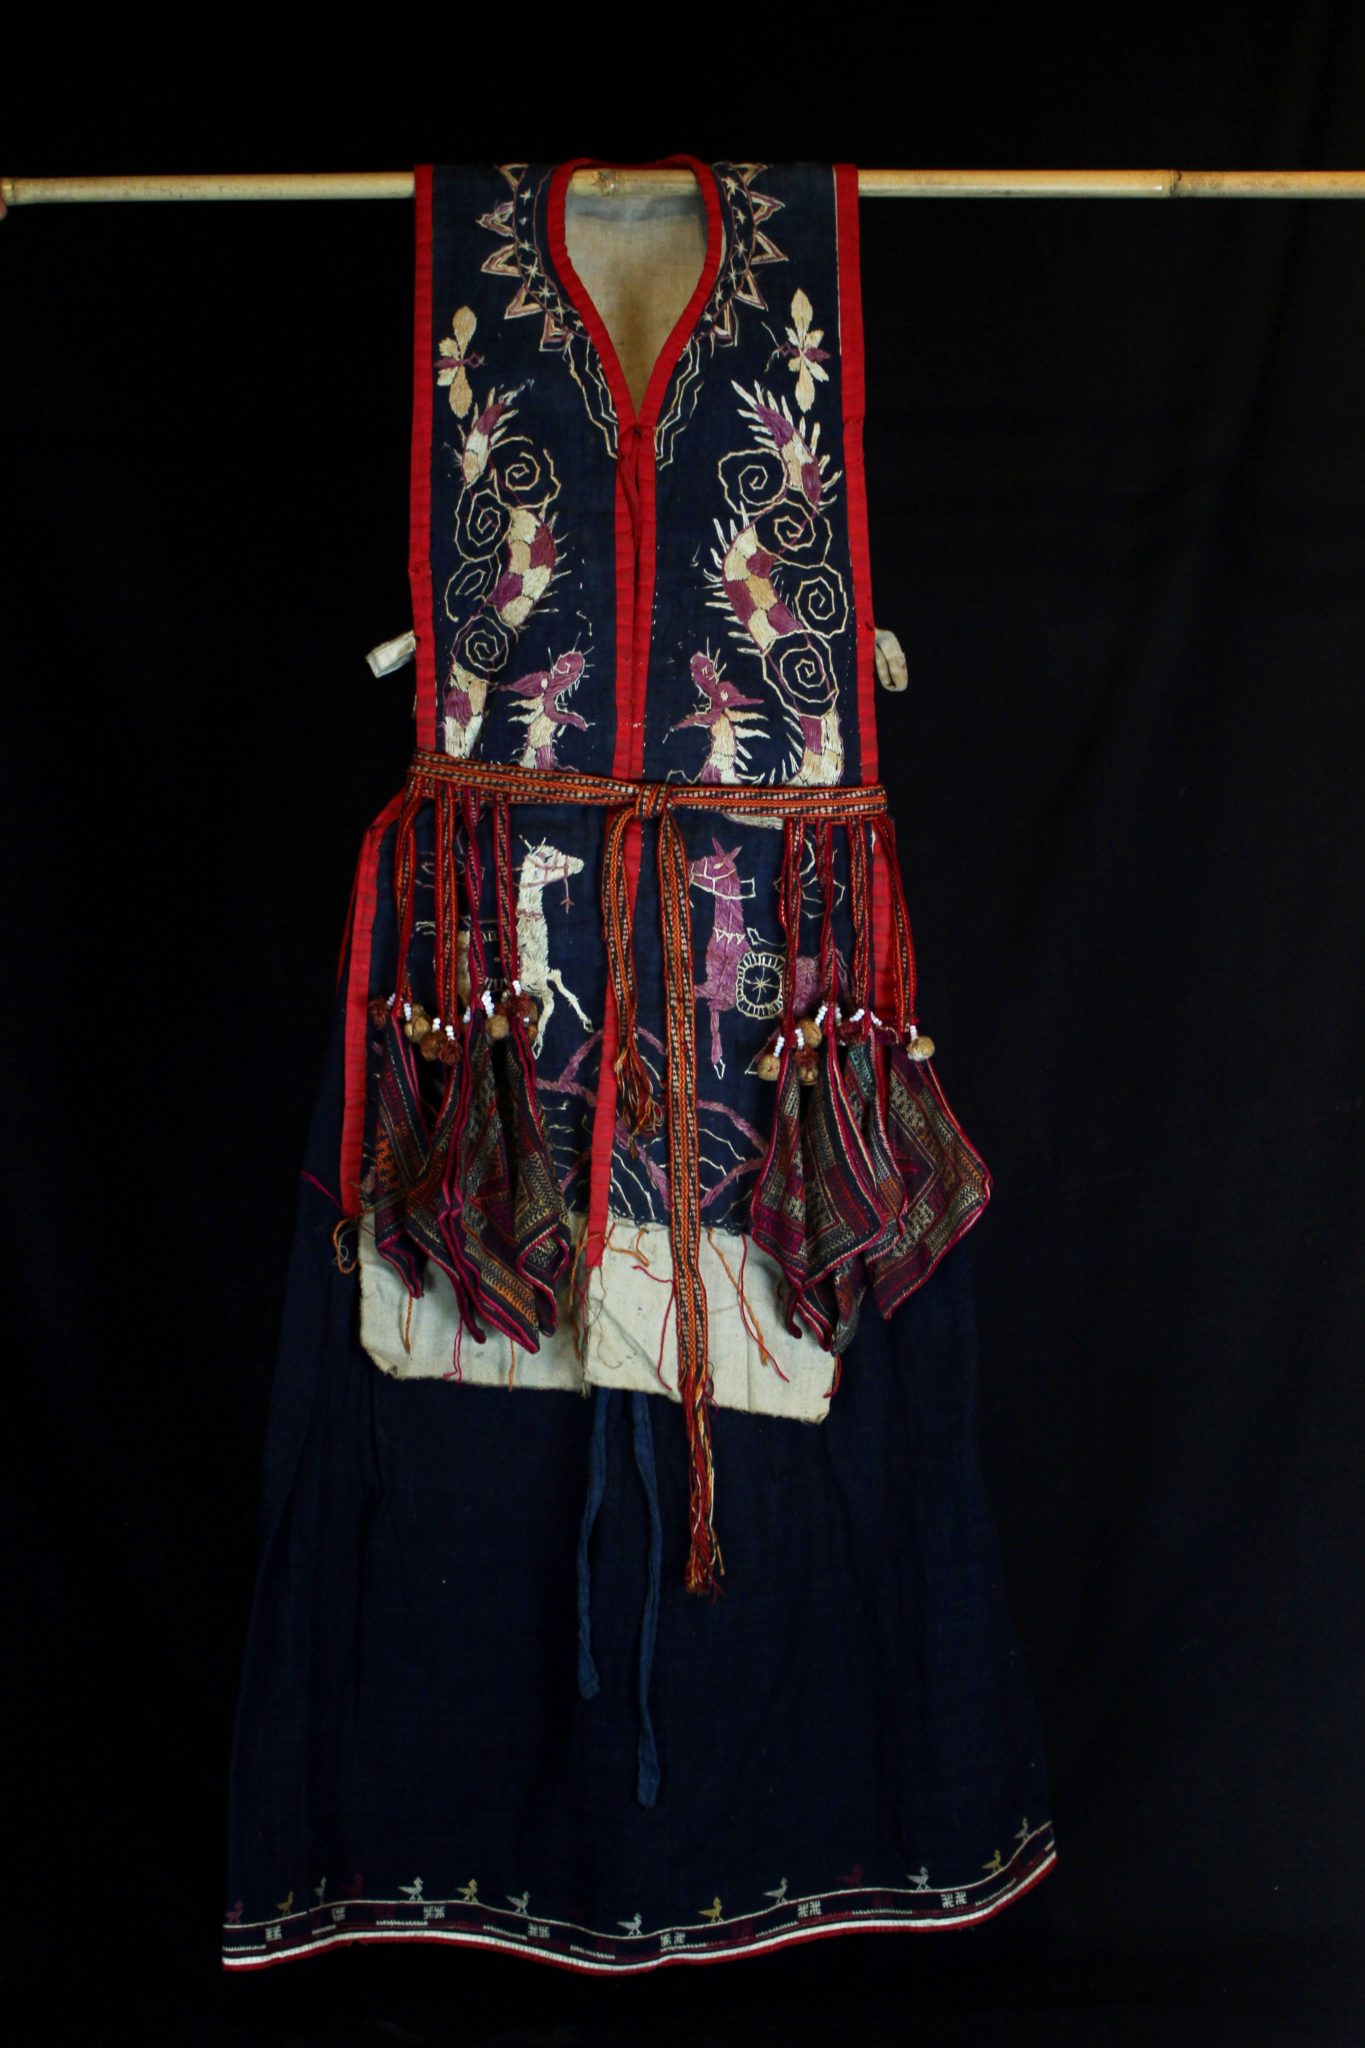 "Shaman's Costume Tunic and Belt, Vietnam, Yao people, Late 19th c, Cotton, indigo, silk embroidery, Worn only by high level shaman. The motif typically includes all the deities of heaven to clothe the shaman in the protection of the universe. Not a vain adornment, it is a reminder of man's place in the hierarchical order. Originally a female costume. Long ago shamans were women and men the providers. Not being encumbered by childbirth and rearing, men replaces women as shamans but retained this part of the sacred costume. *more information available. 47"" x 27 ½"" x 3"", $3100."